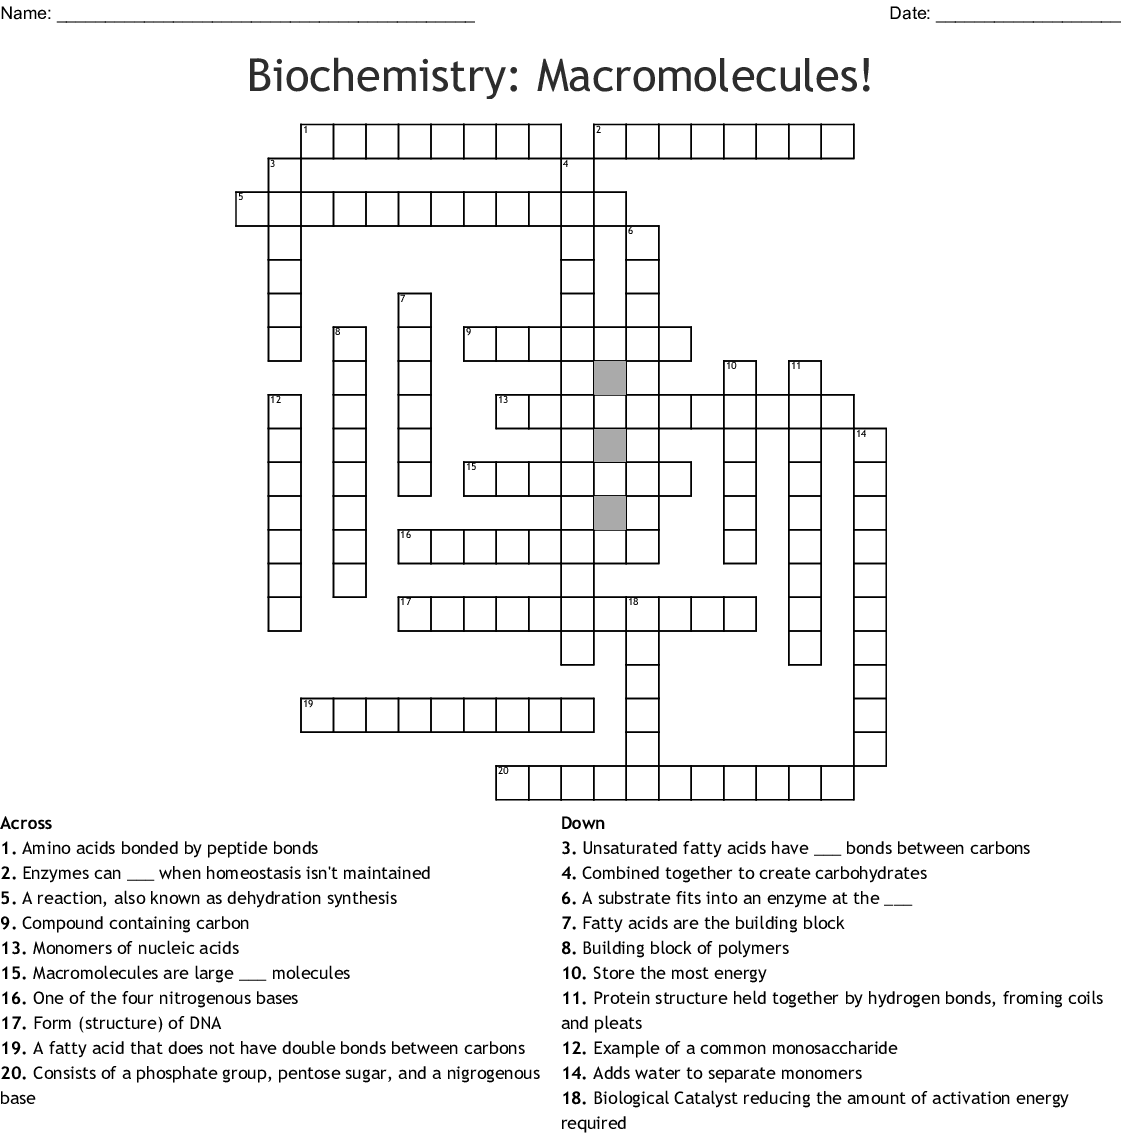 Building Monomers Of Macromolecules Worksheet Answers